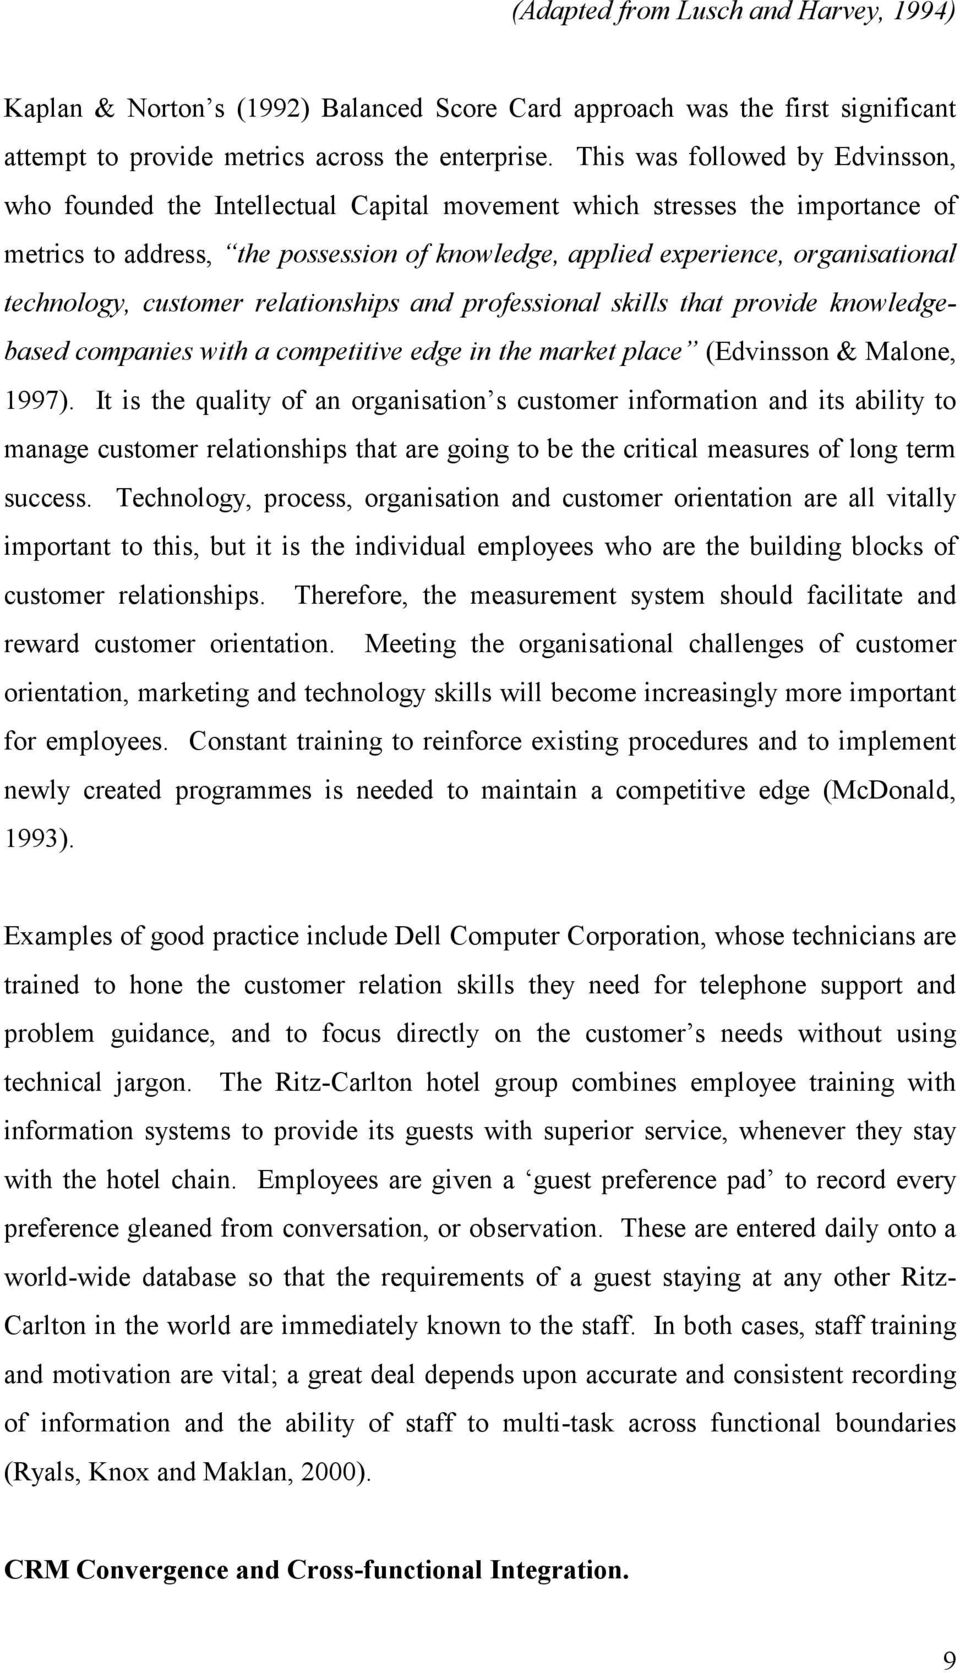 technology, customer relationships and professional skills that provide knowledgebased companies with a competitive edge in the market place (Edvinsson & Malone, 1997).